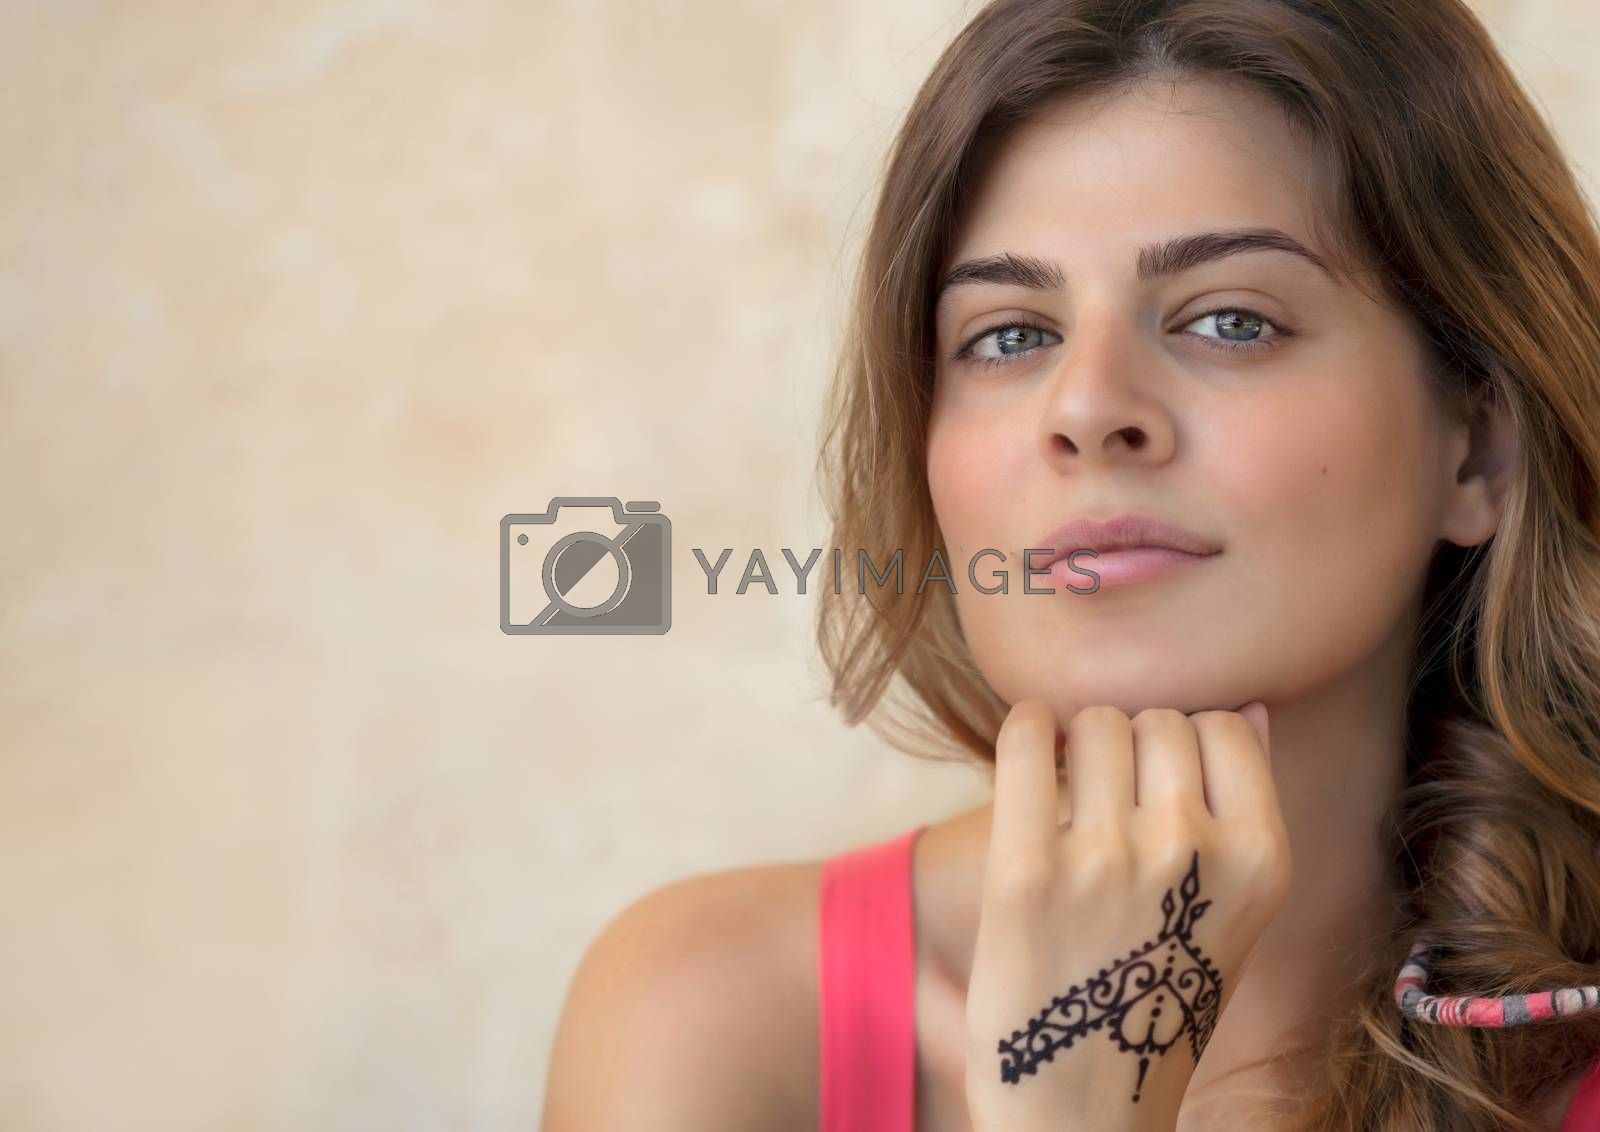 Portrait of an Attractive Woman Isolated on Beige Background with Beautiful Mehndi Drawing on the Hand. Stylish Body Art. Natural Beauty of Young Female. Photo with Copy Space.